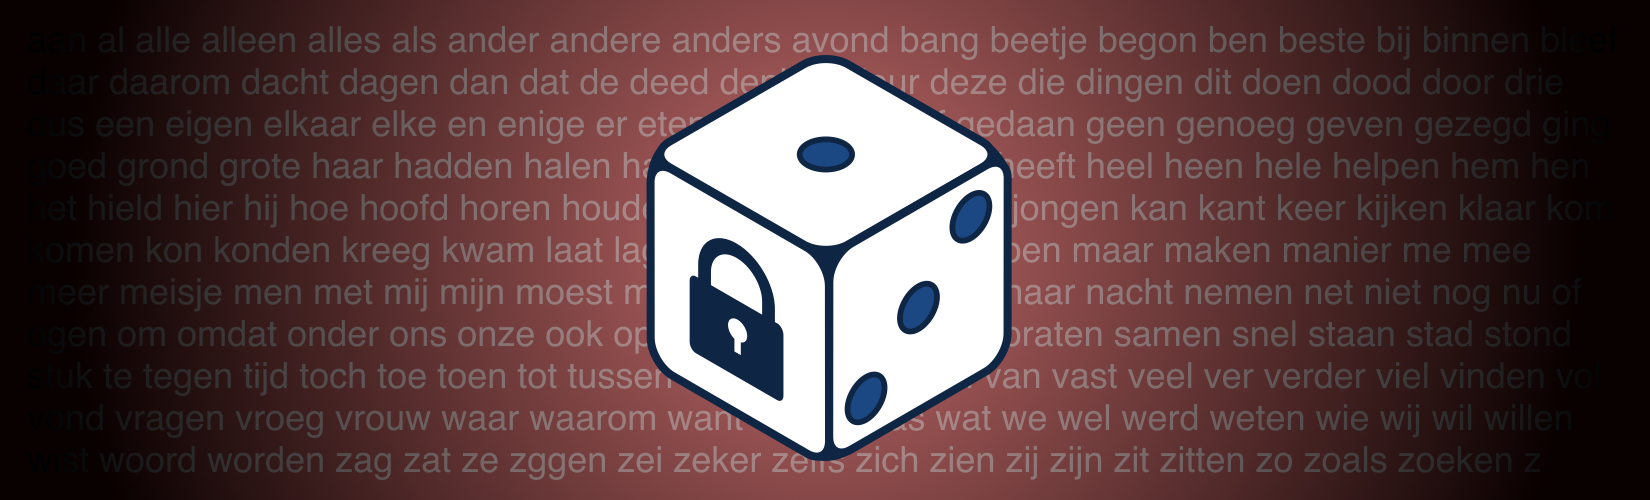 image from A Dutch Diceware List